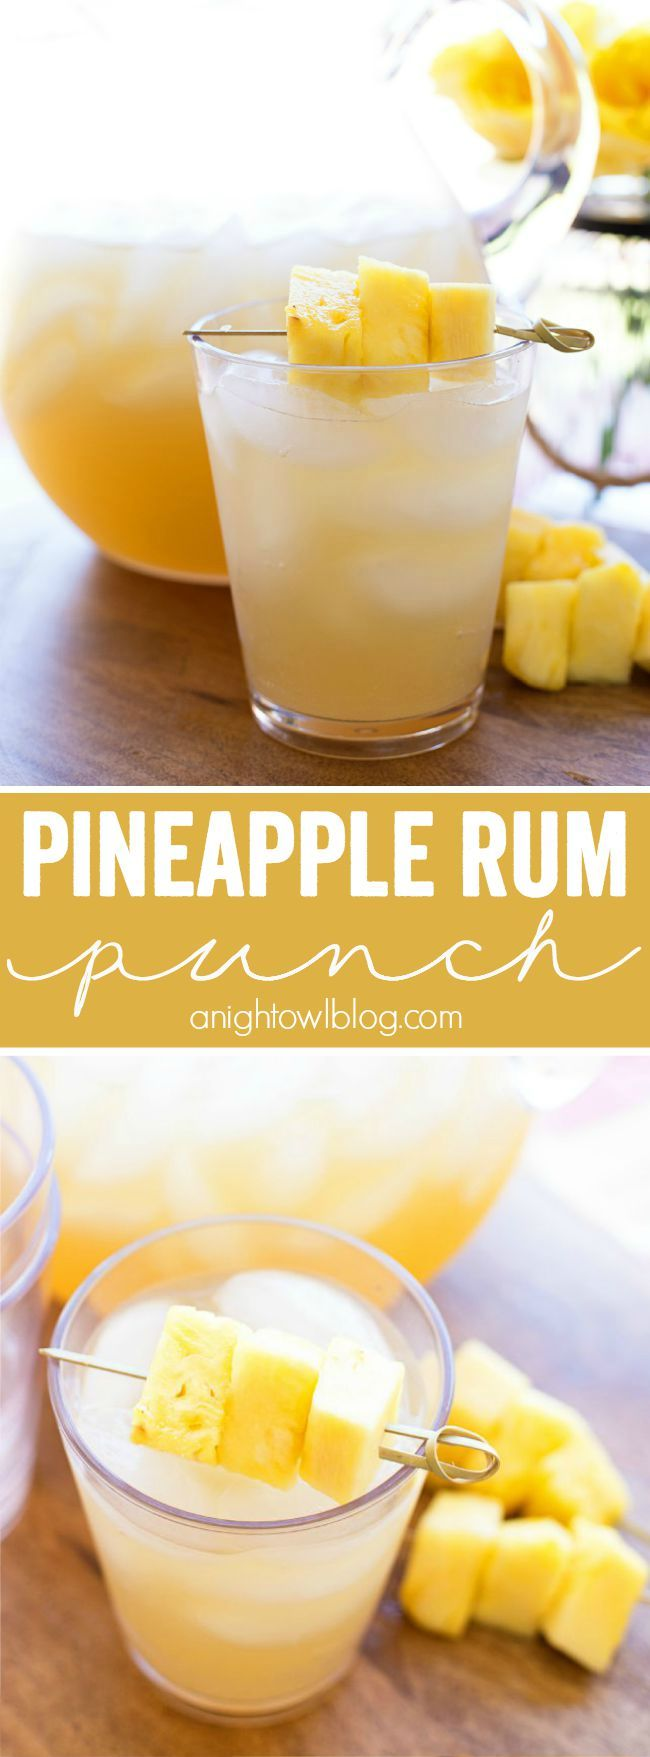 Pineapple Rum Punch – the perfect mix of tropical flavors.